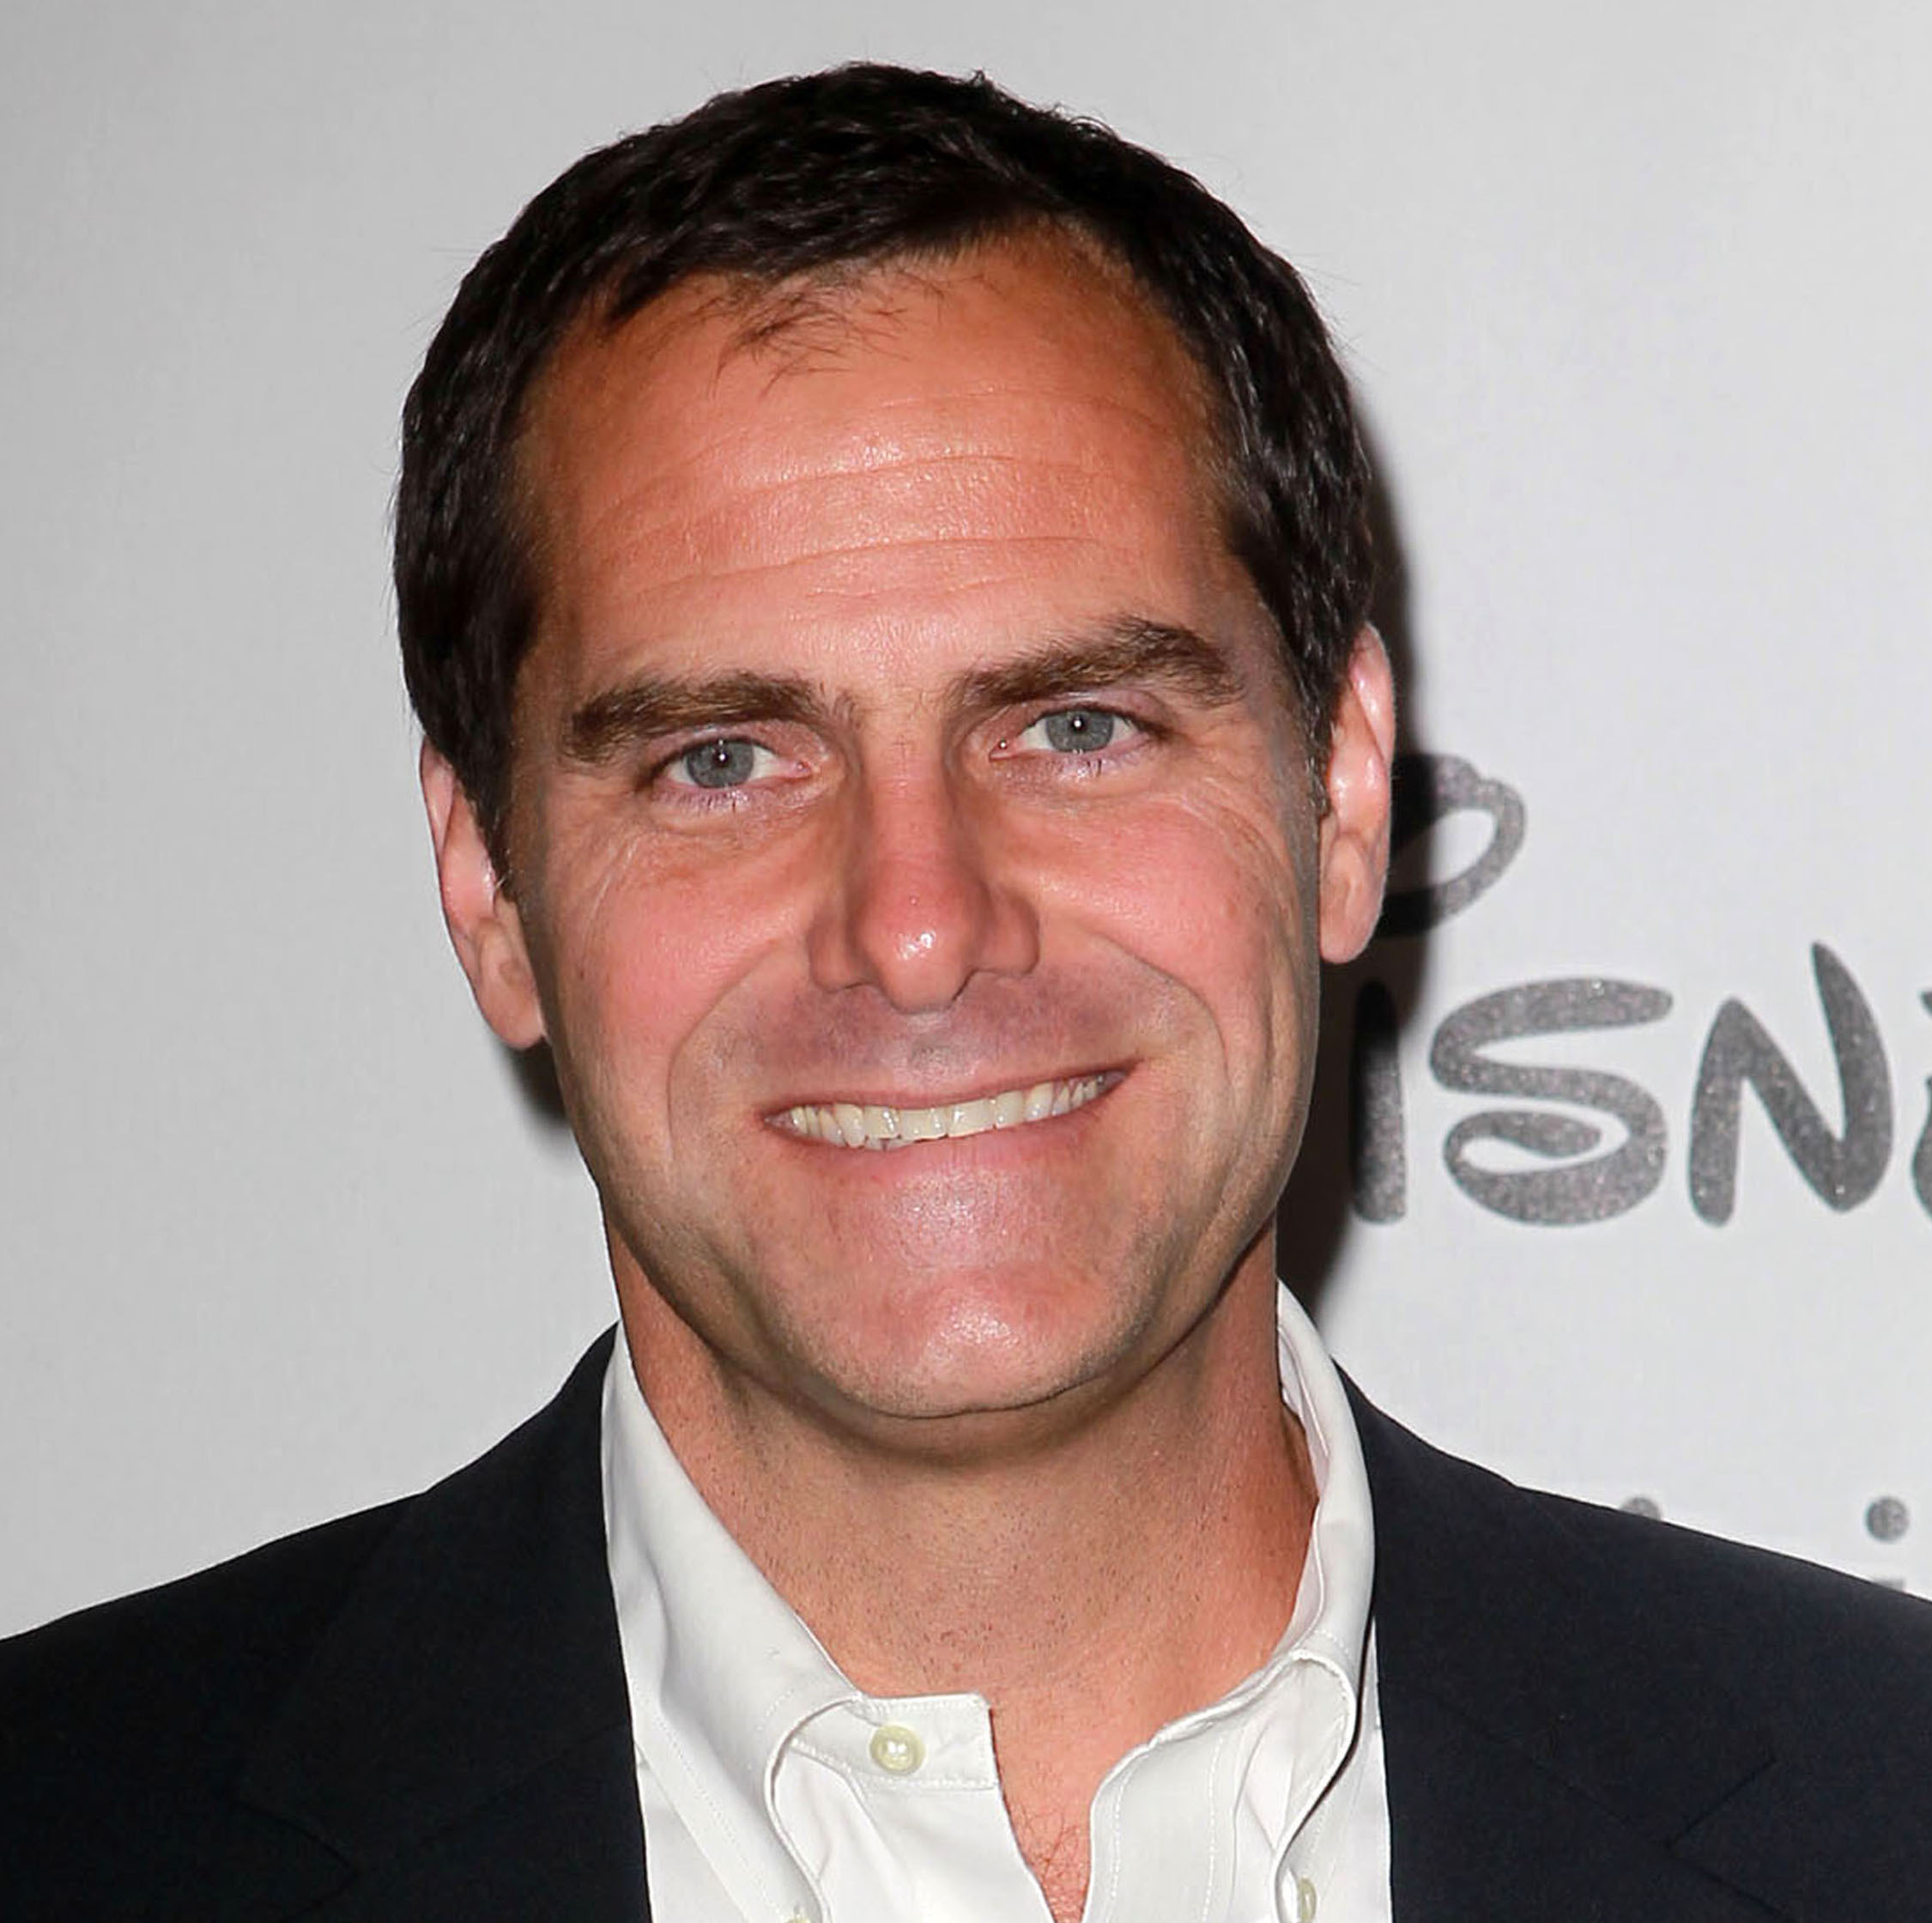 andy buckley merrill lynch